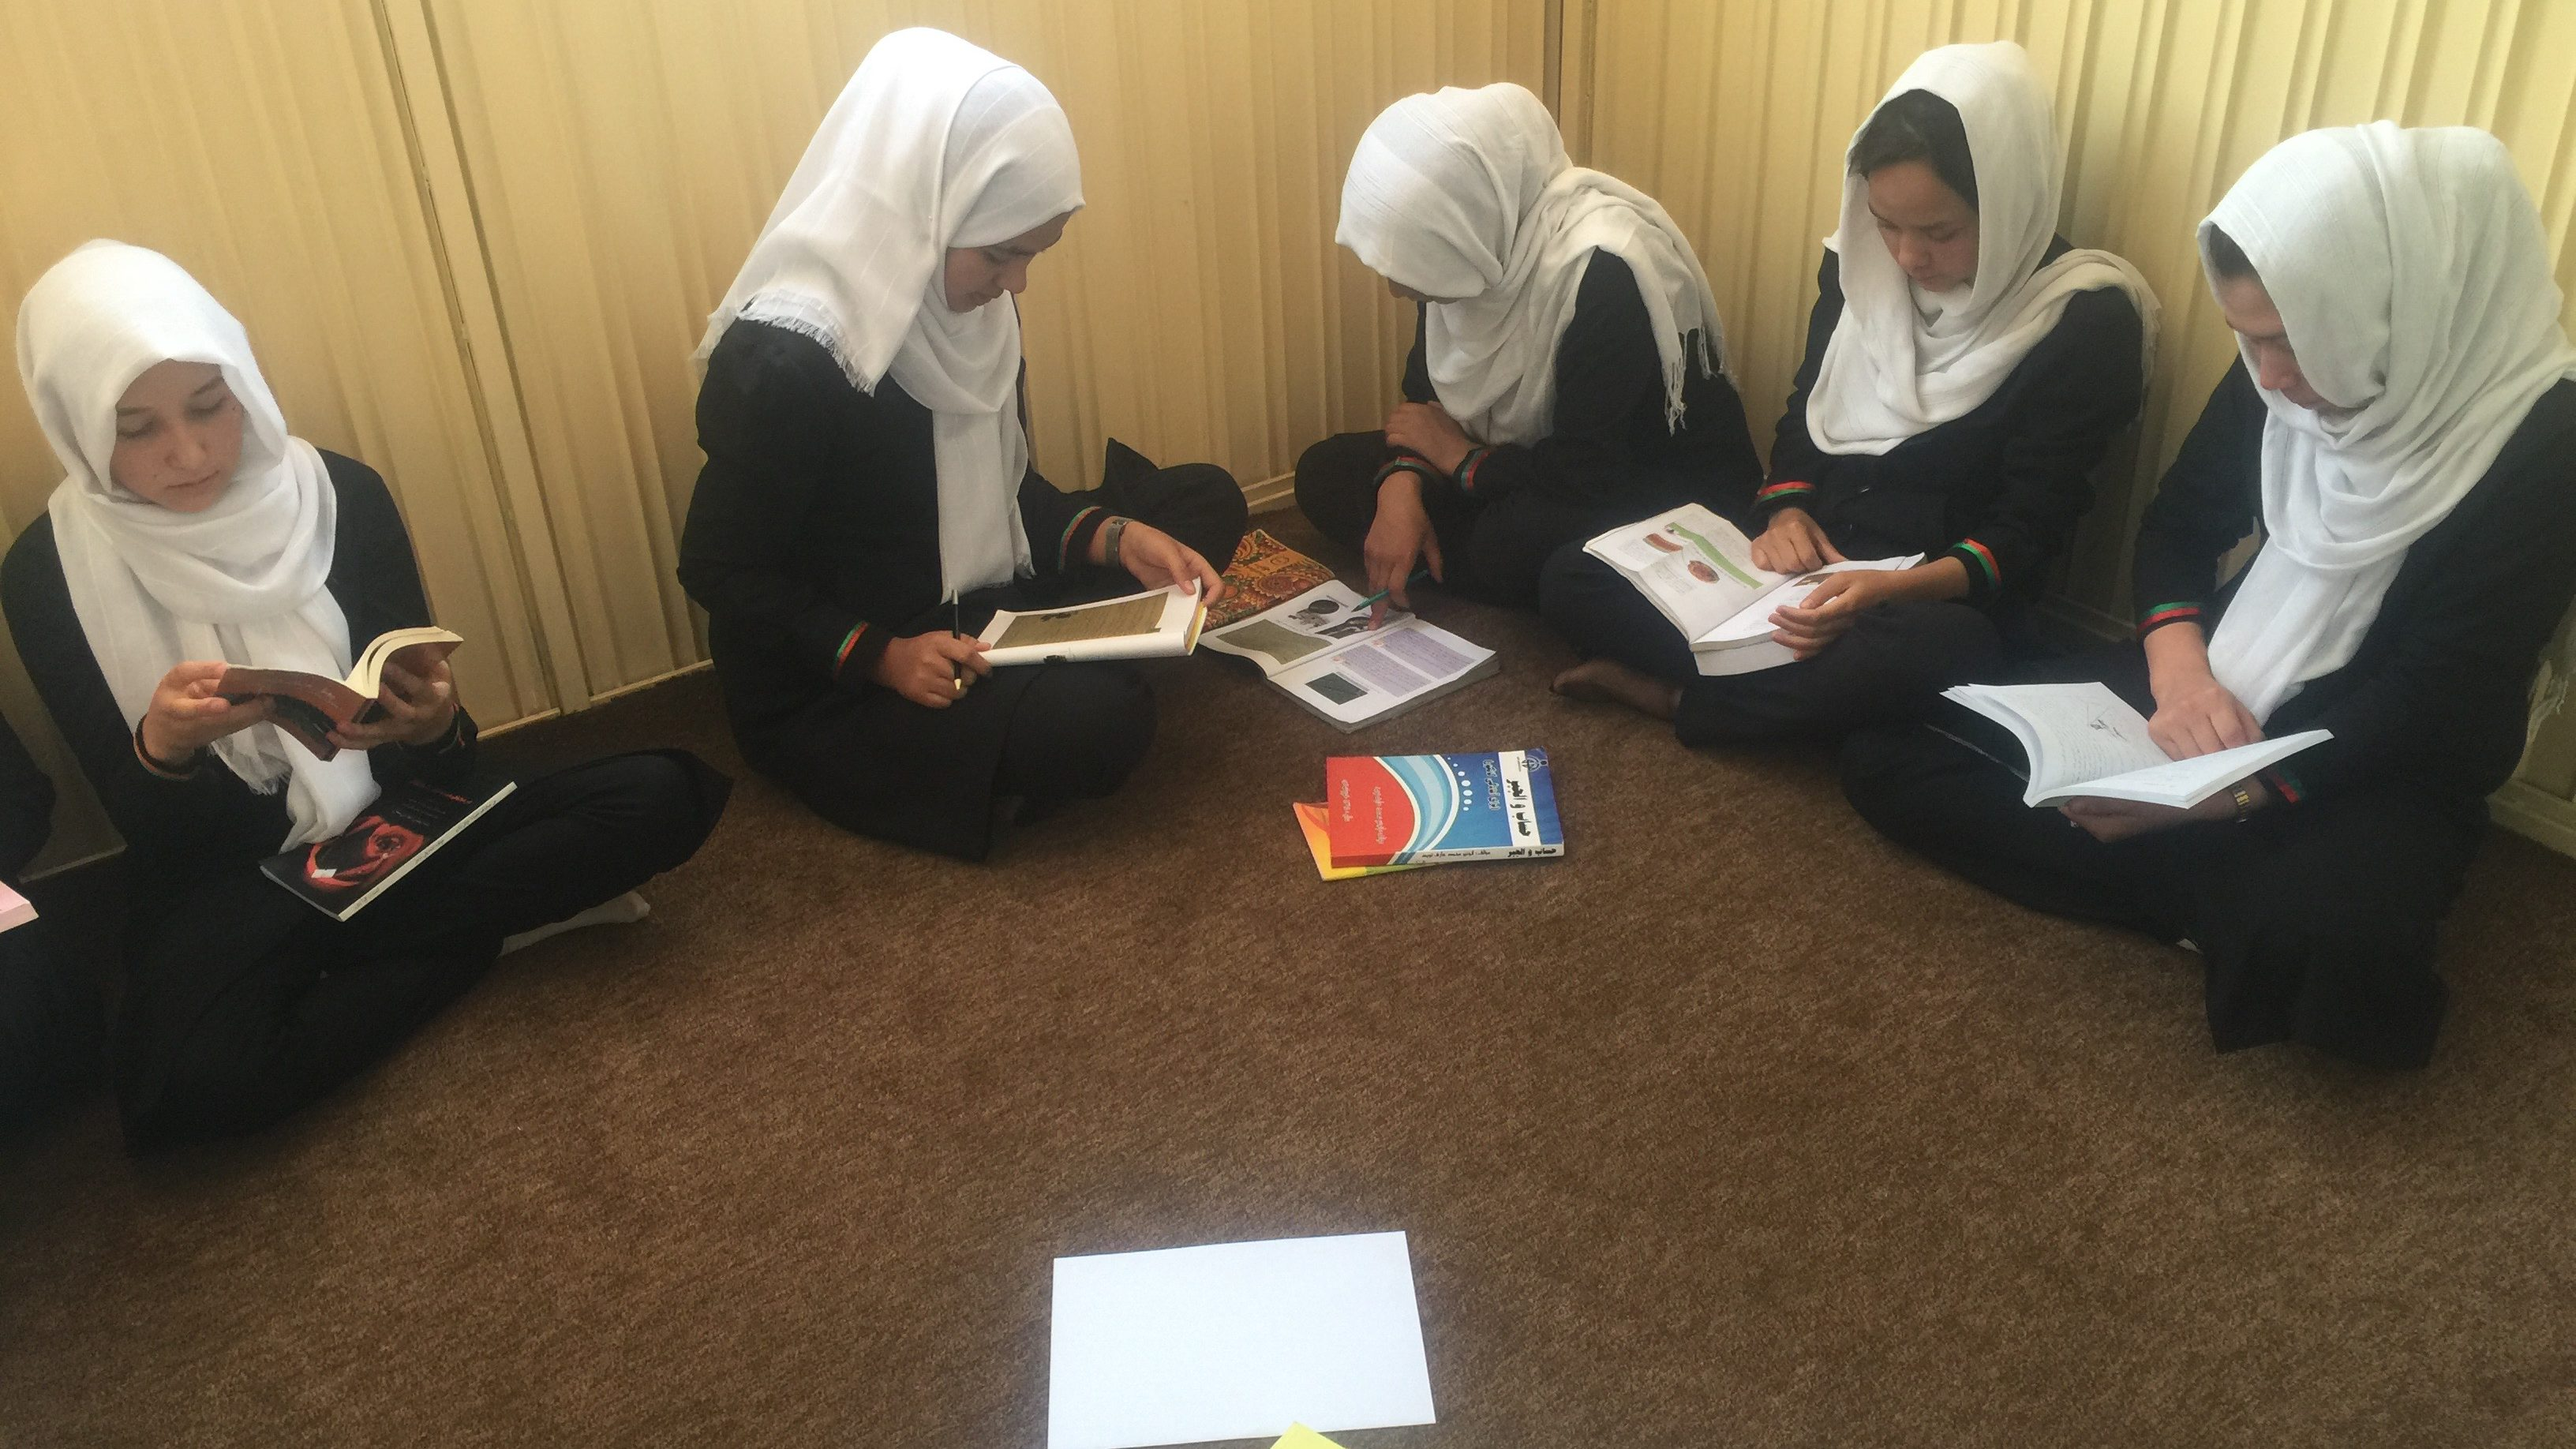 Silent reading time.